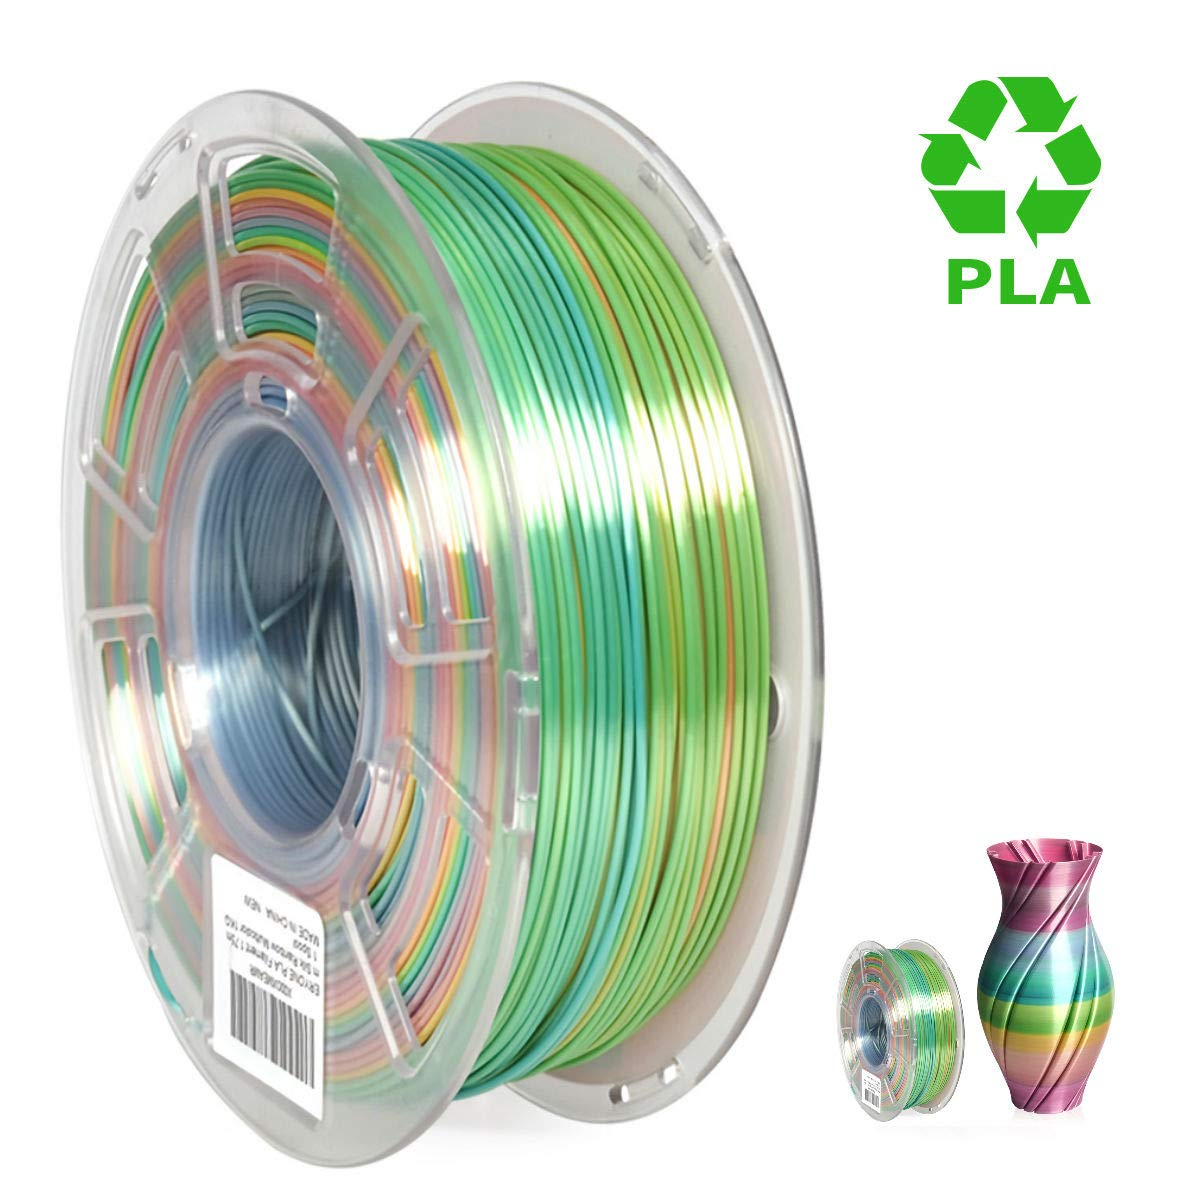 Lagoon and Multicolor PLA Filament for FDM 3D Printer 1kg 1 Spool Rainbow Lagoon Filament PLA 1.75mm Eryone PLA Filament Lagoonbow